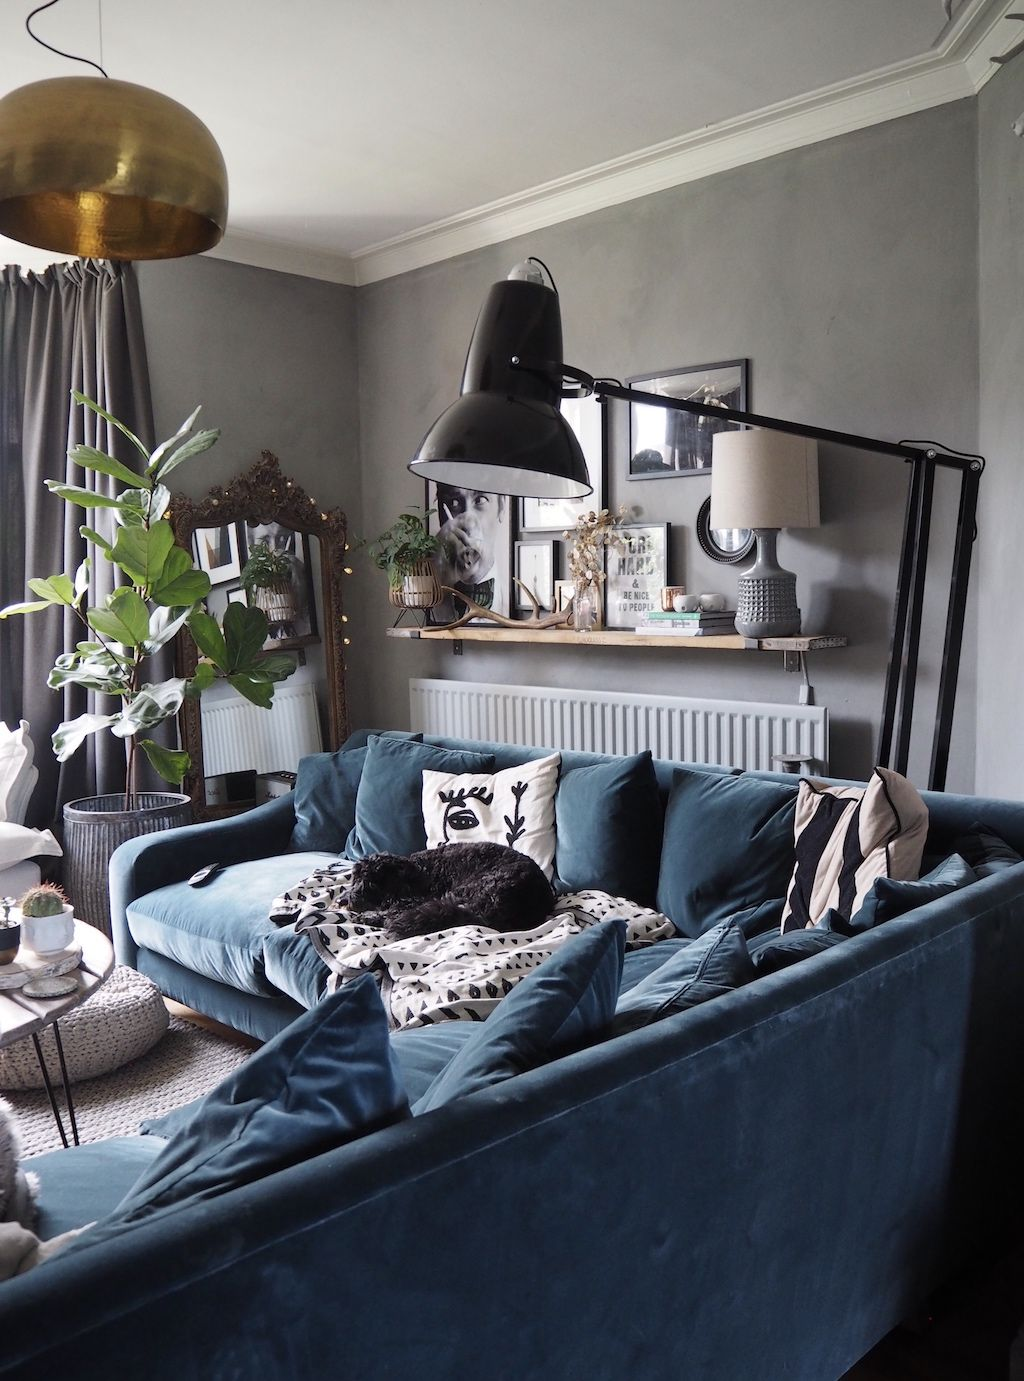 Living Life In The Slow Lane With Our New Loaf Sofa Corner Sofa Living Room Living Room Modern Living Room Sofa